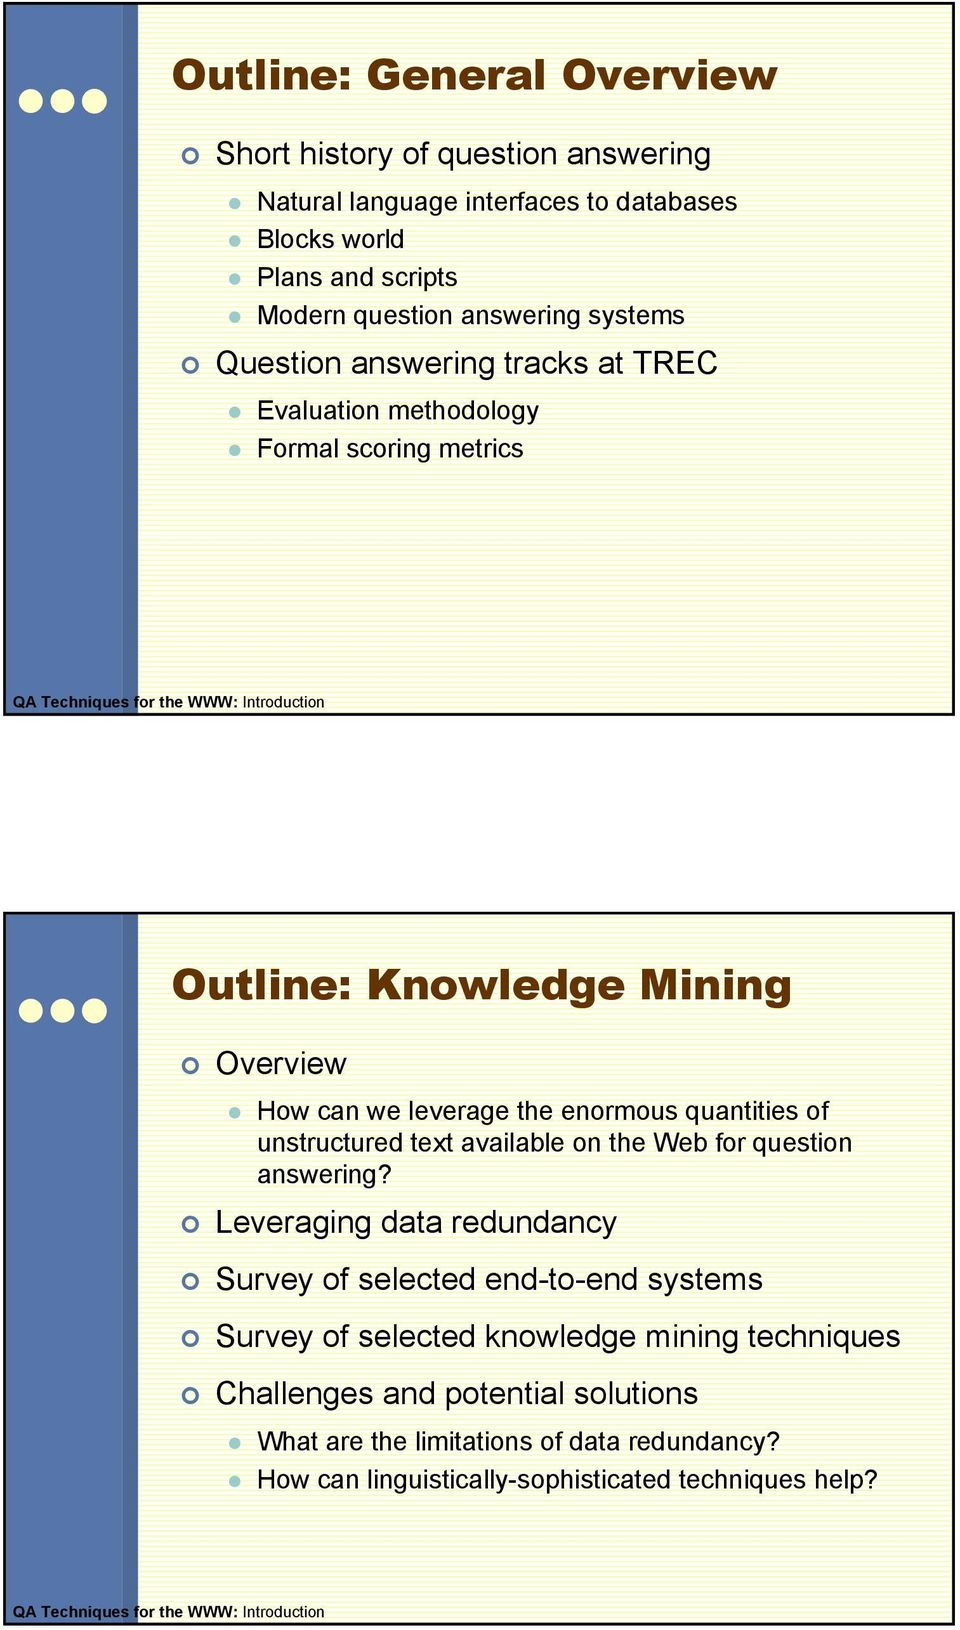 quantities of unstructured text available on the Web for question answering?